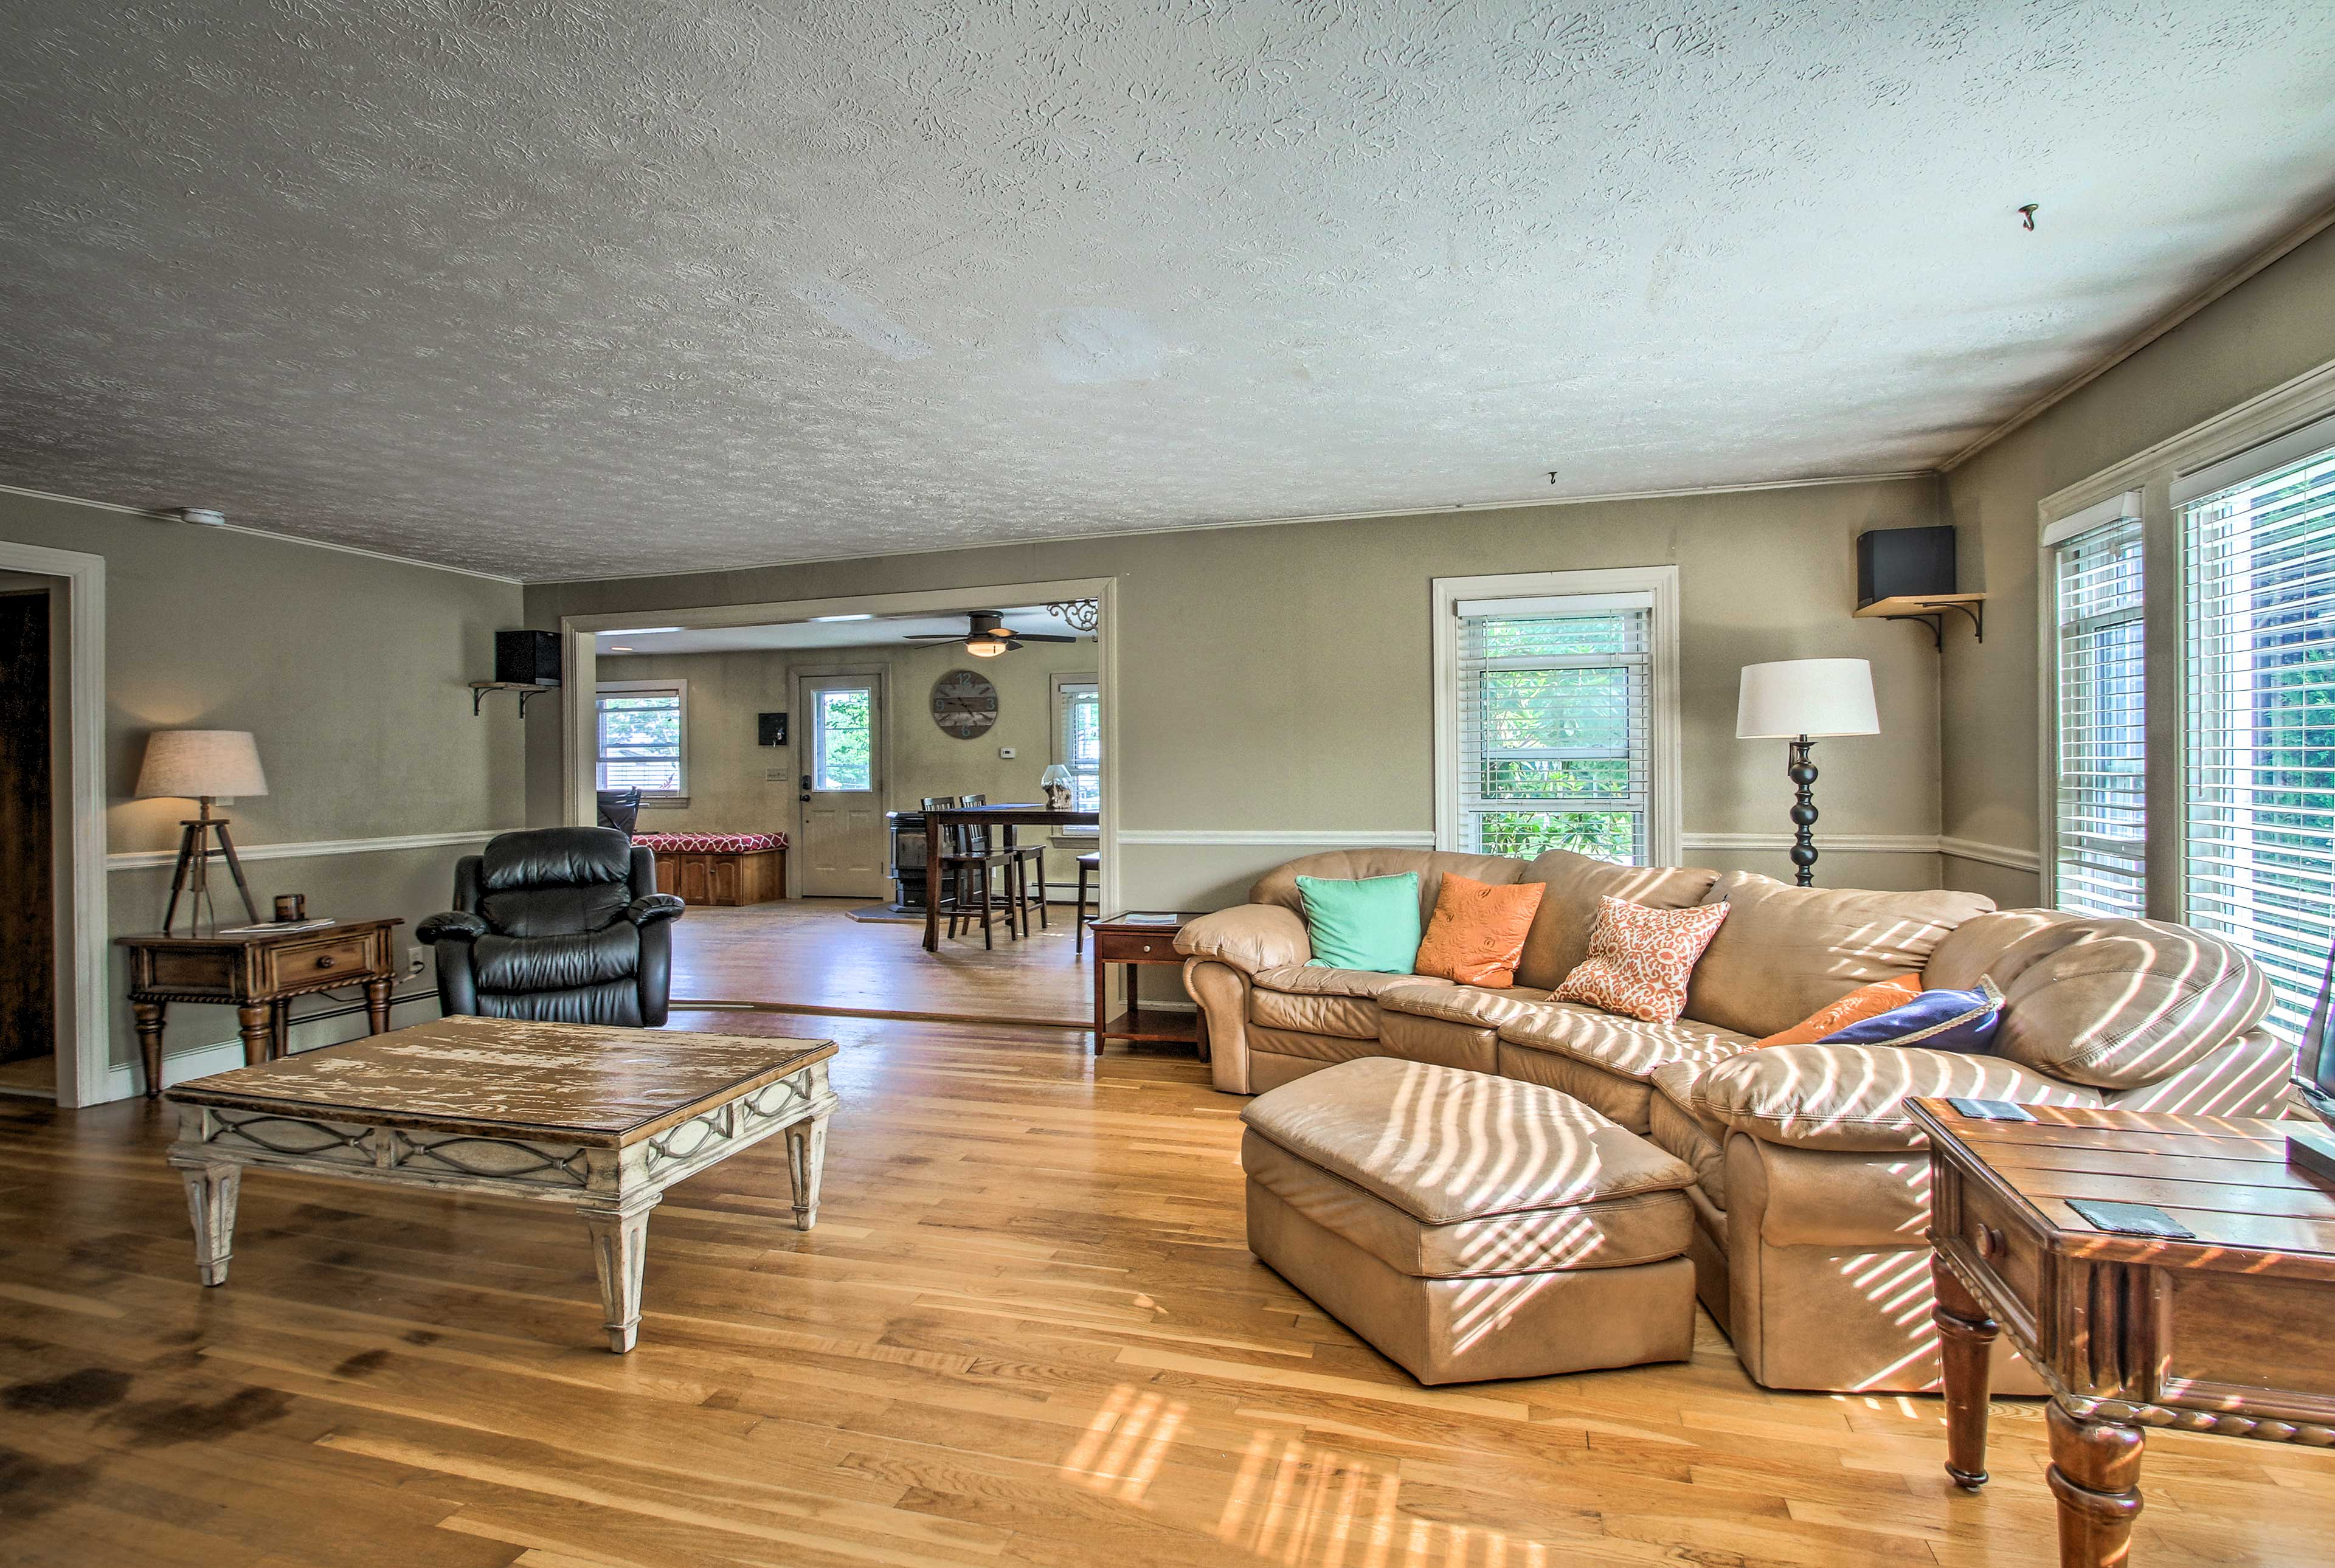 After exploring all that Old Orchard Beach has to offer, retire to the home!